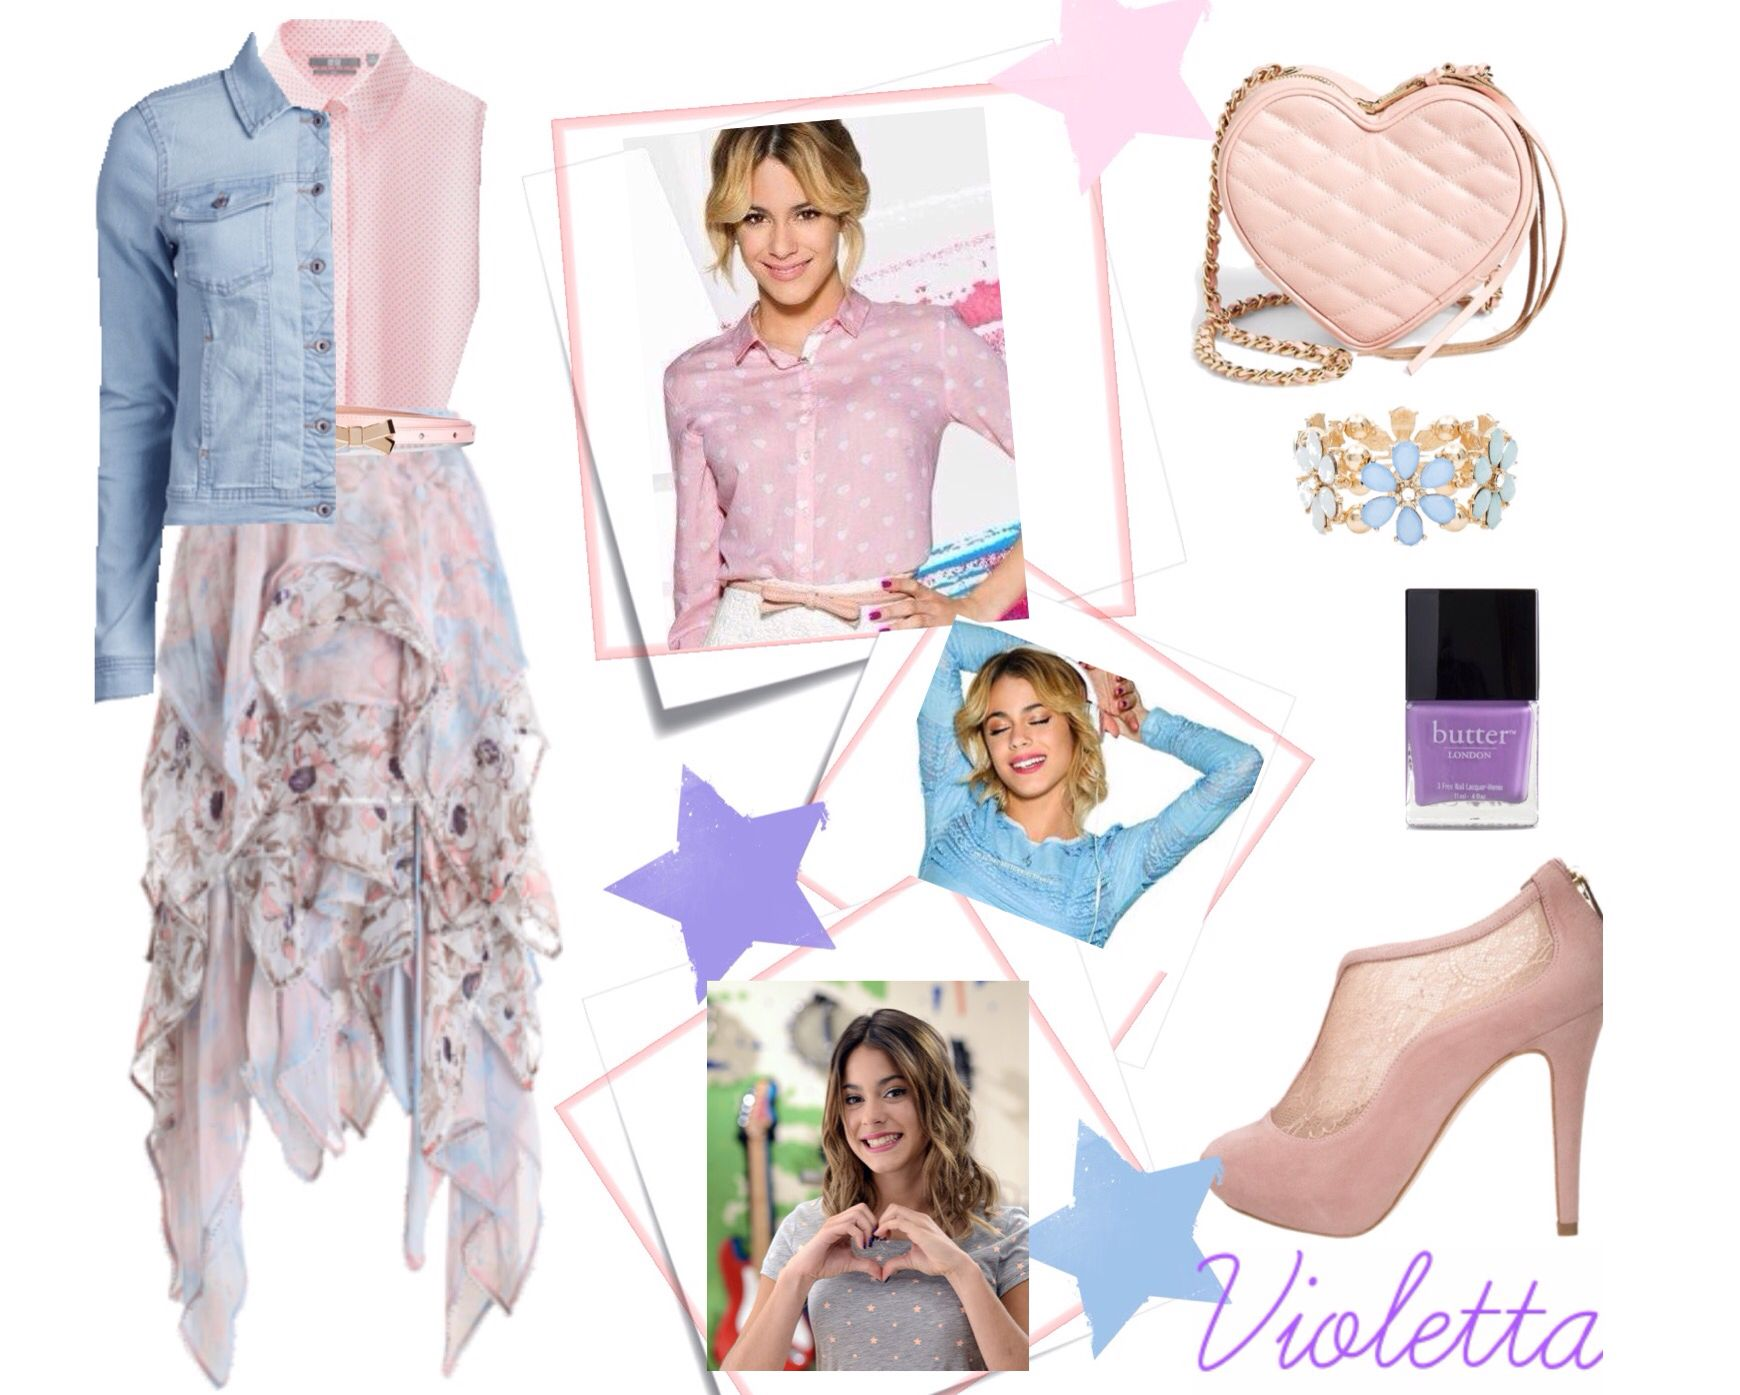 Tenue 2 Violetta Violetta Pinterest Clothes Marley Rose And Clothing